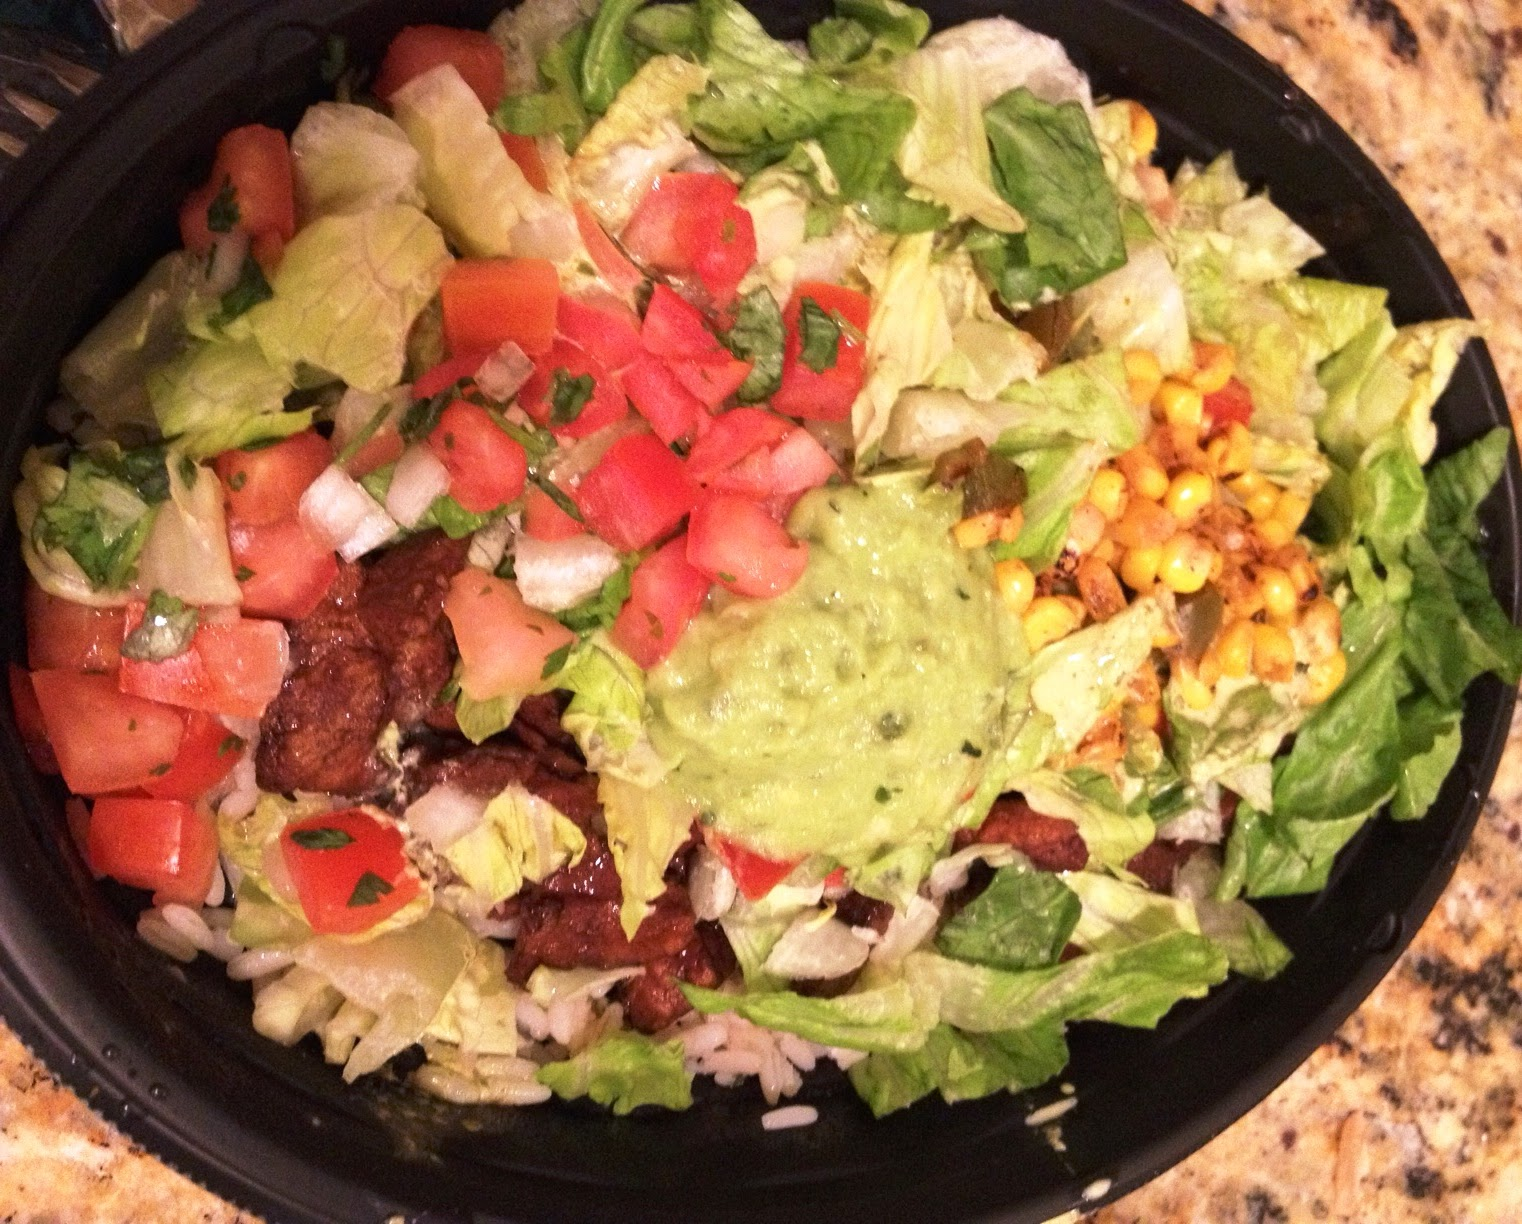 image relating to Taco Bell Printable Menu titled The Excellent of the Bowls: Taco Bueno vs. Taco Bell vs. Taco